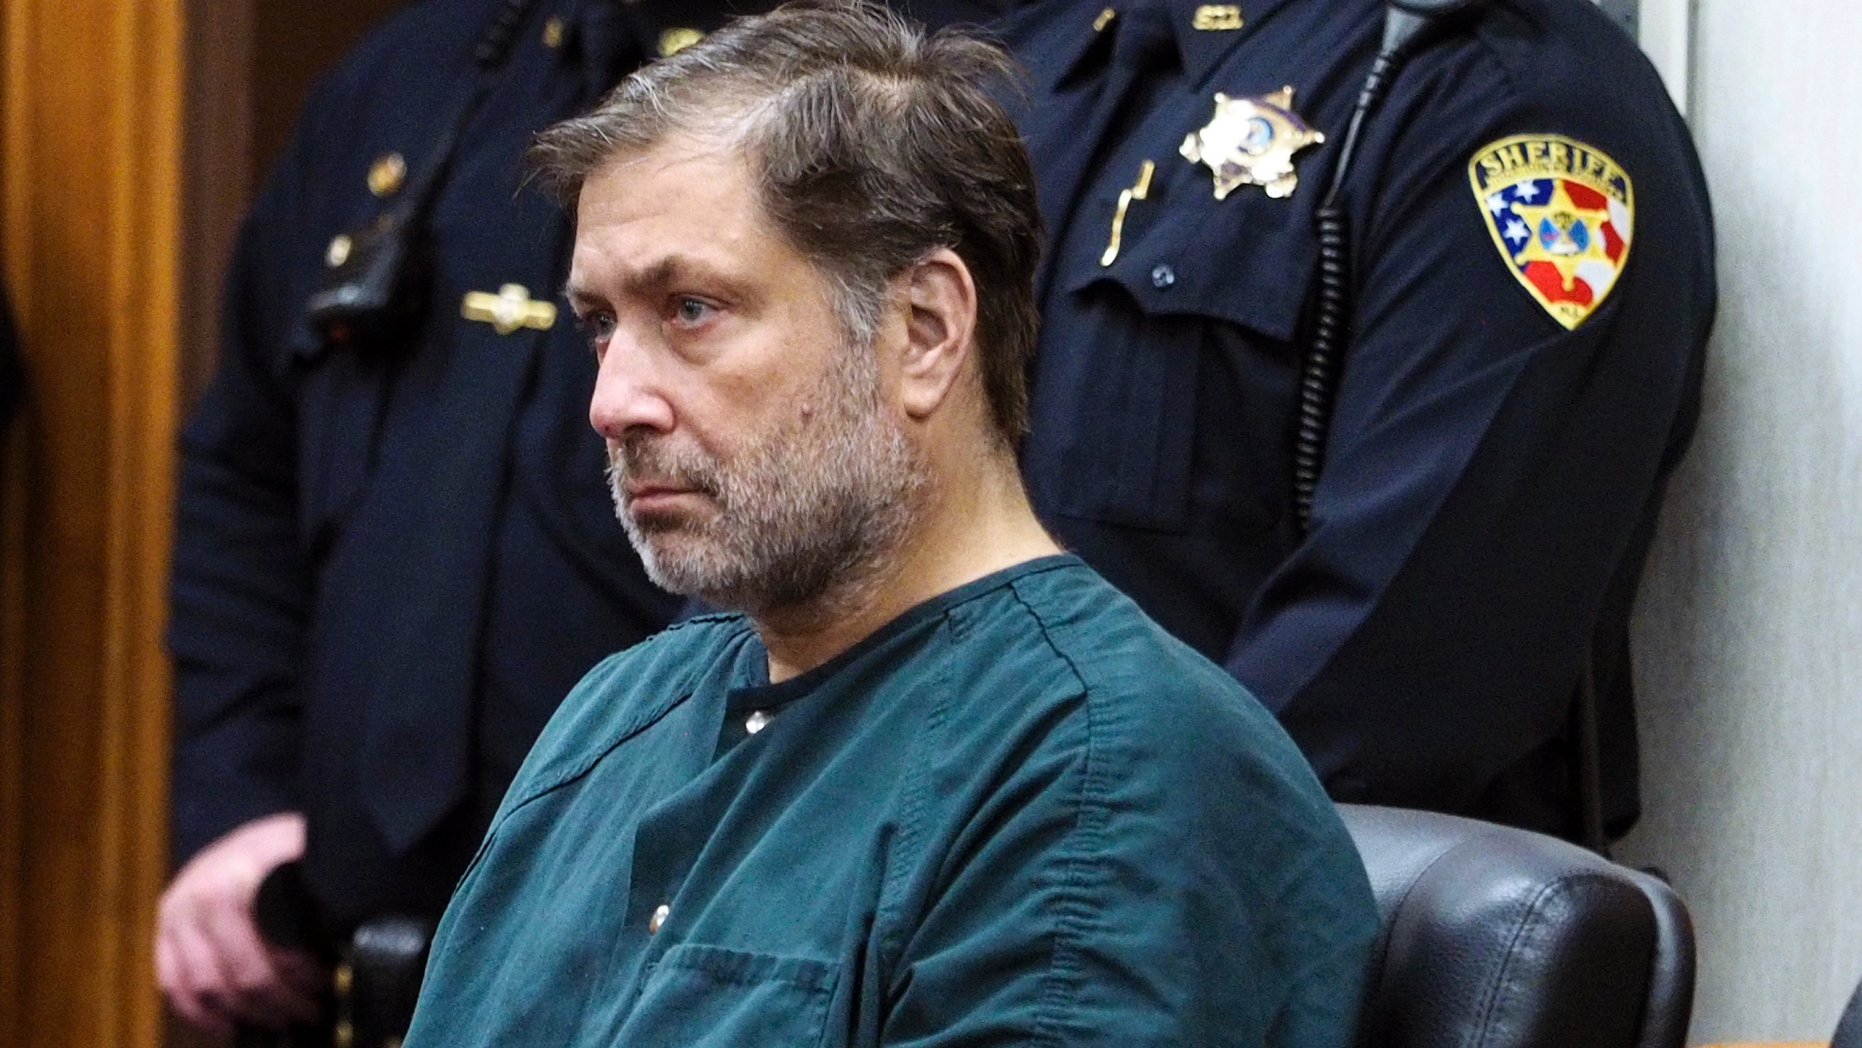 Paul Caneiro appears in Monmouth County Superior Court for a detention hearing on Friday, Nov. 30, 2018 in Freehold, N.J. Caneiro, 51, faces four counts of murder, along with arson and weapons charges, in the deaths of his brother Keith; Keith's wife, Jennifer; their 11-year-old son, Jesse; and their 8-year-old daughter, Sophia.  (Patti Sapone/NJ Advance Media via AP, Pool)